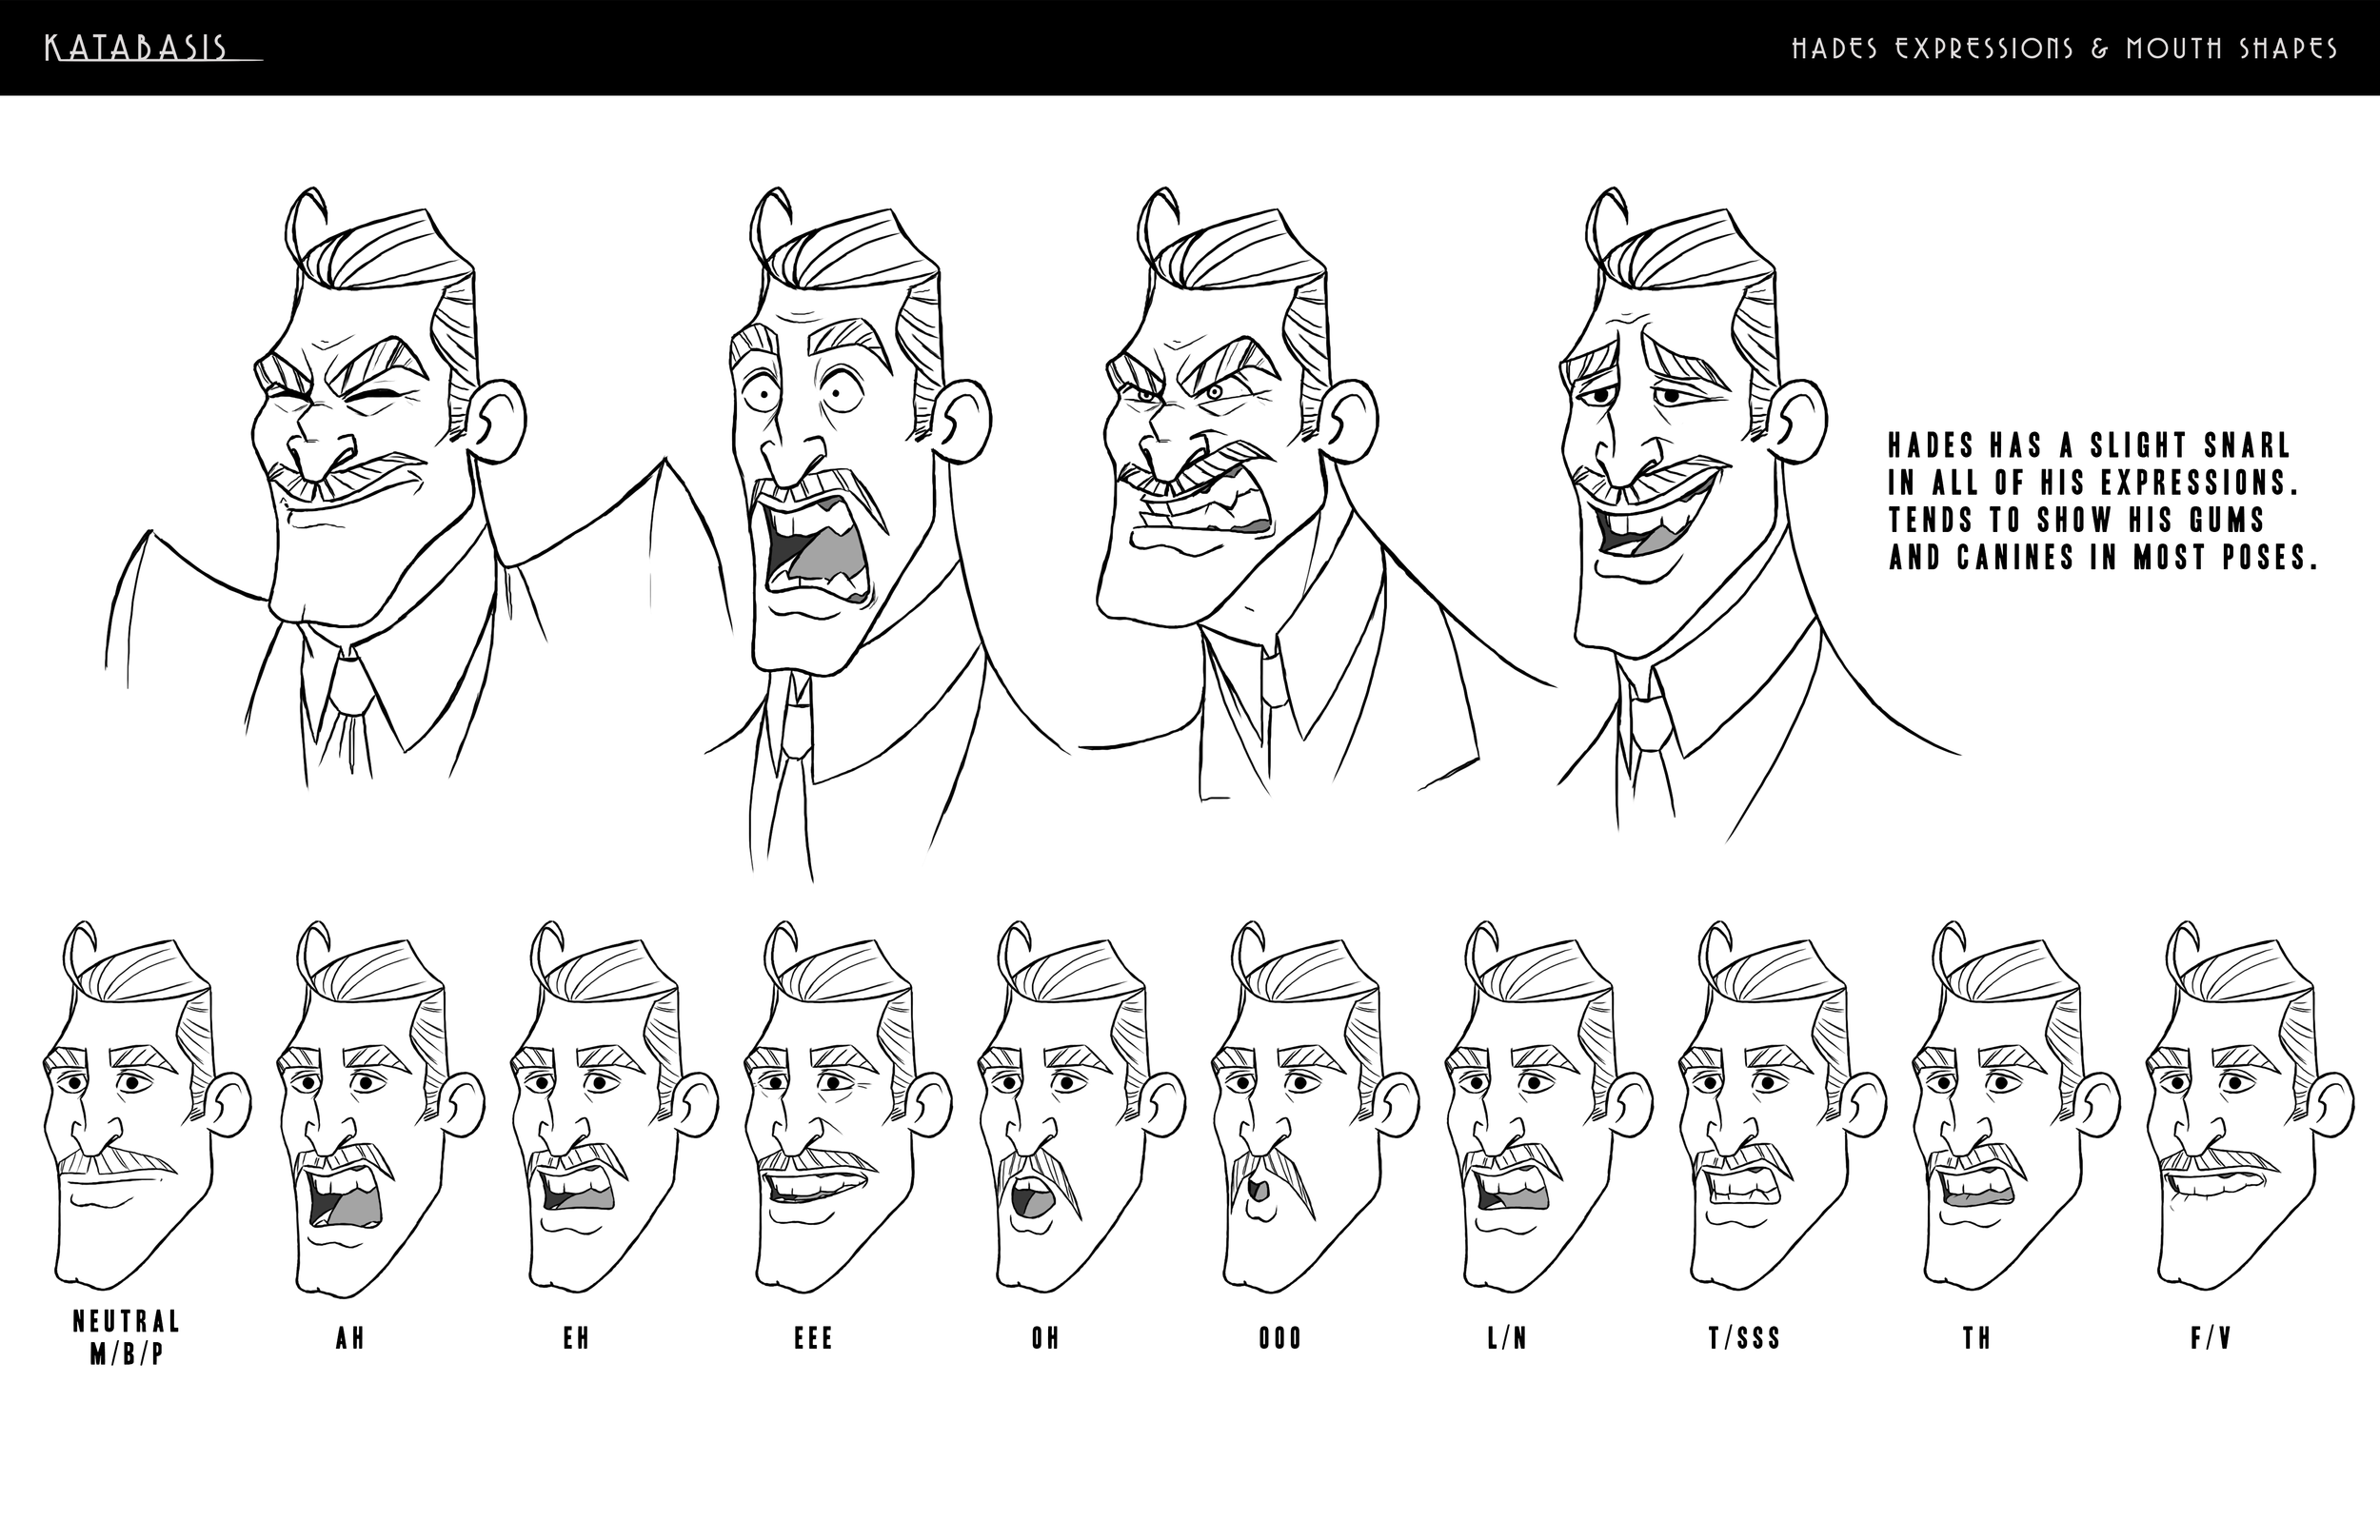 Hades_Expressions.png